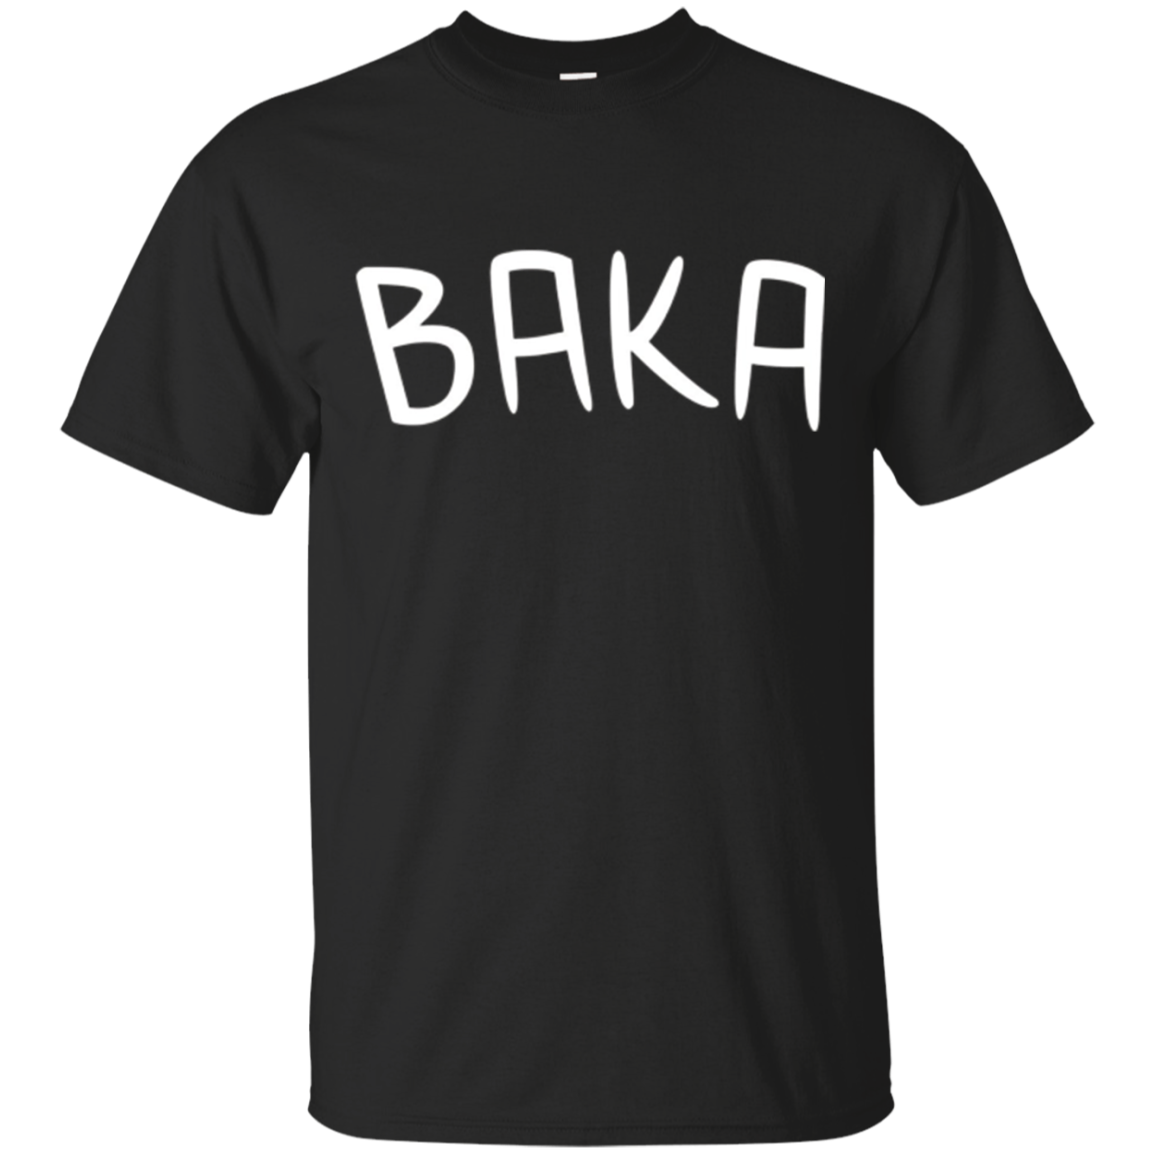 Baka Shirt, Funny Cute Anime Manga Japanese Word Gift